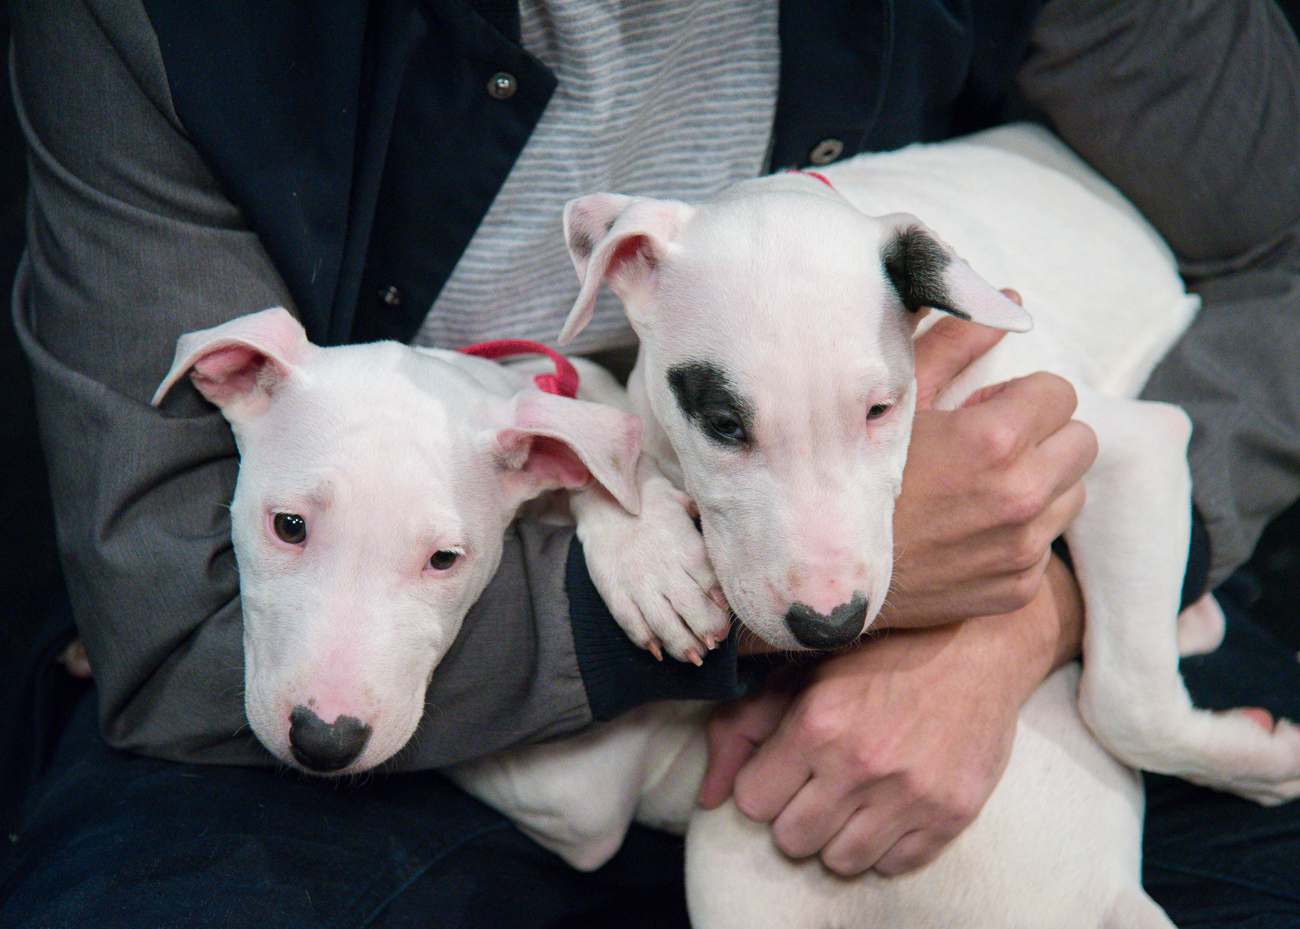 PICTURED: Ruby and Joy, 3-month-old bull terrier puppies / ABOUT: The Society for the Prevention of Cruelty to Animals (SPCA) is an organization that seeks out new, loving owners for adoptable, adorable dogs and cats. While the pets in these photos are likely already adopted by the time this is published, you can find other dogs and cats like them by visiting SPCAcincinnati.org. The organization receives new animals often; Local 12 WKRC-TV features several of those pets every Tuesday on their morning and evening broadcasts and every Saturday during the morning broadcast. / Image: Phil Armstrong, Cincinnati Refined // Published: 10.24.18